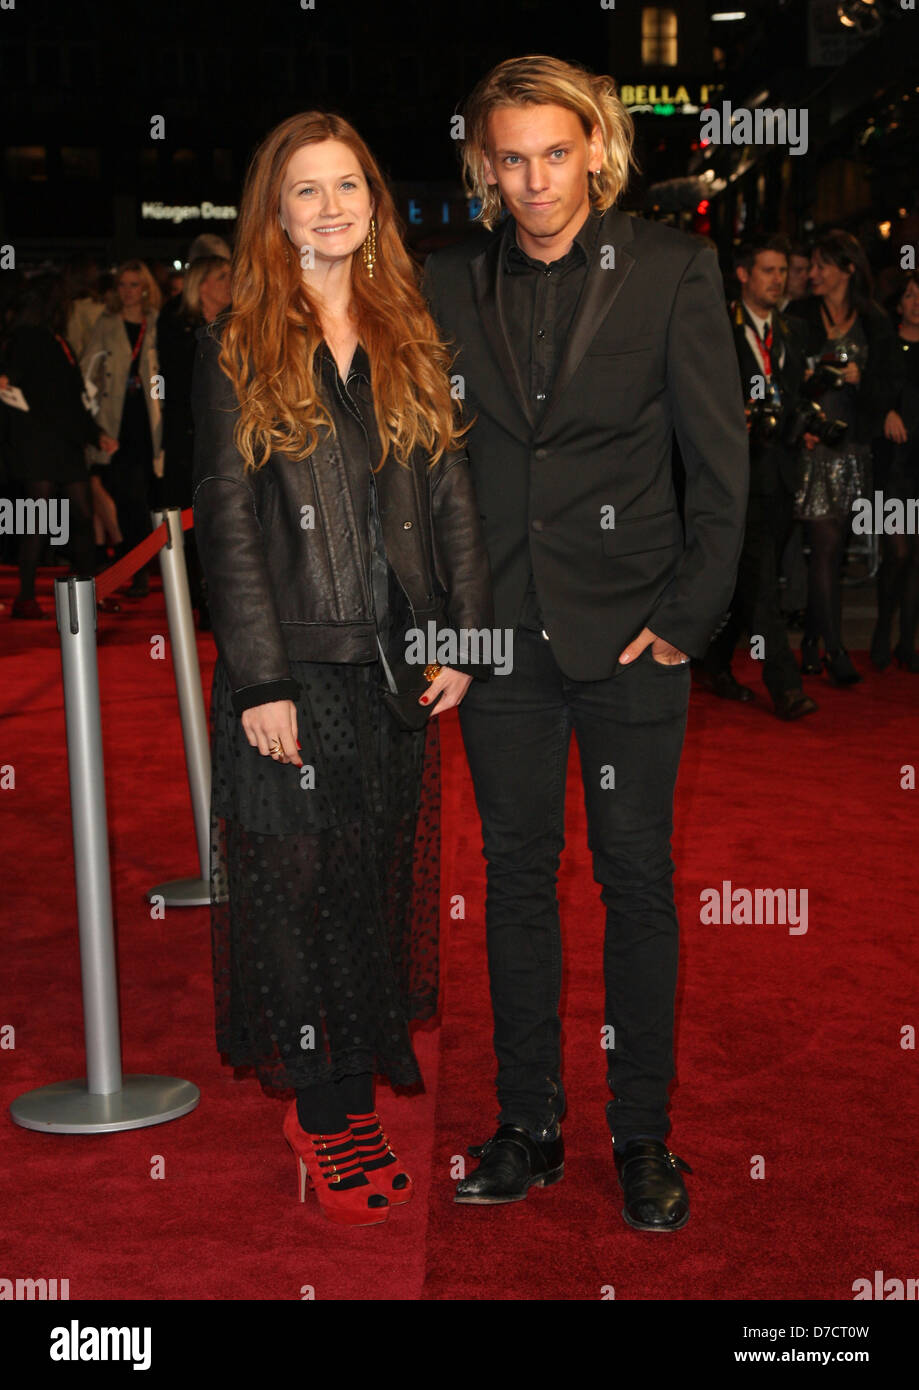 Is jamie campbell bower dating bonnie wright